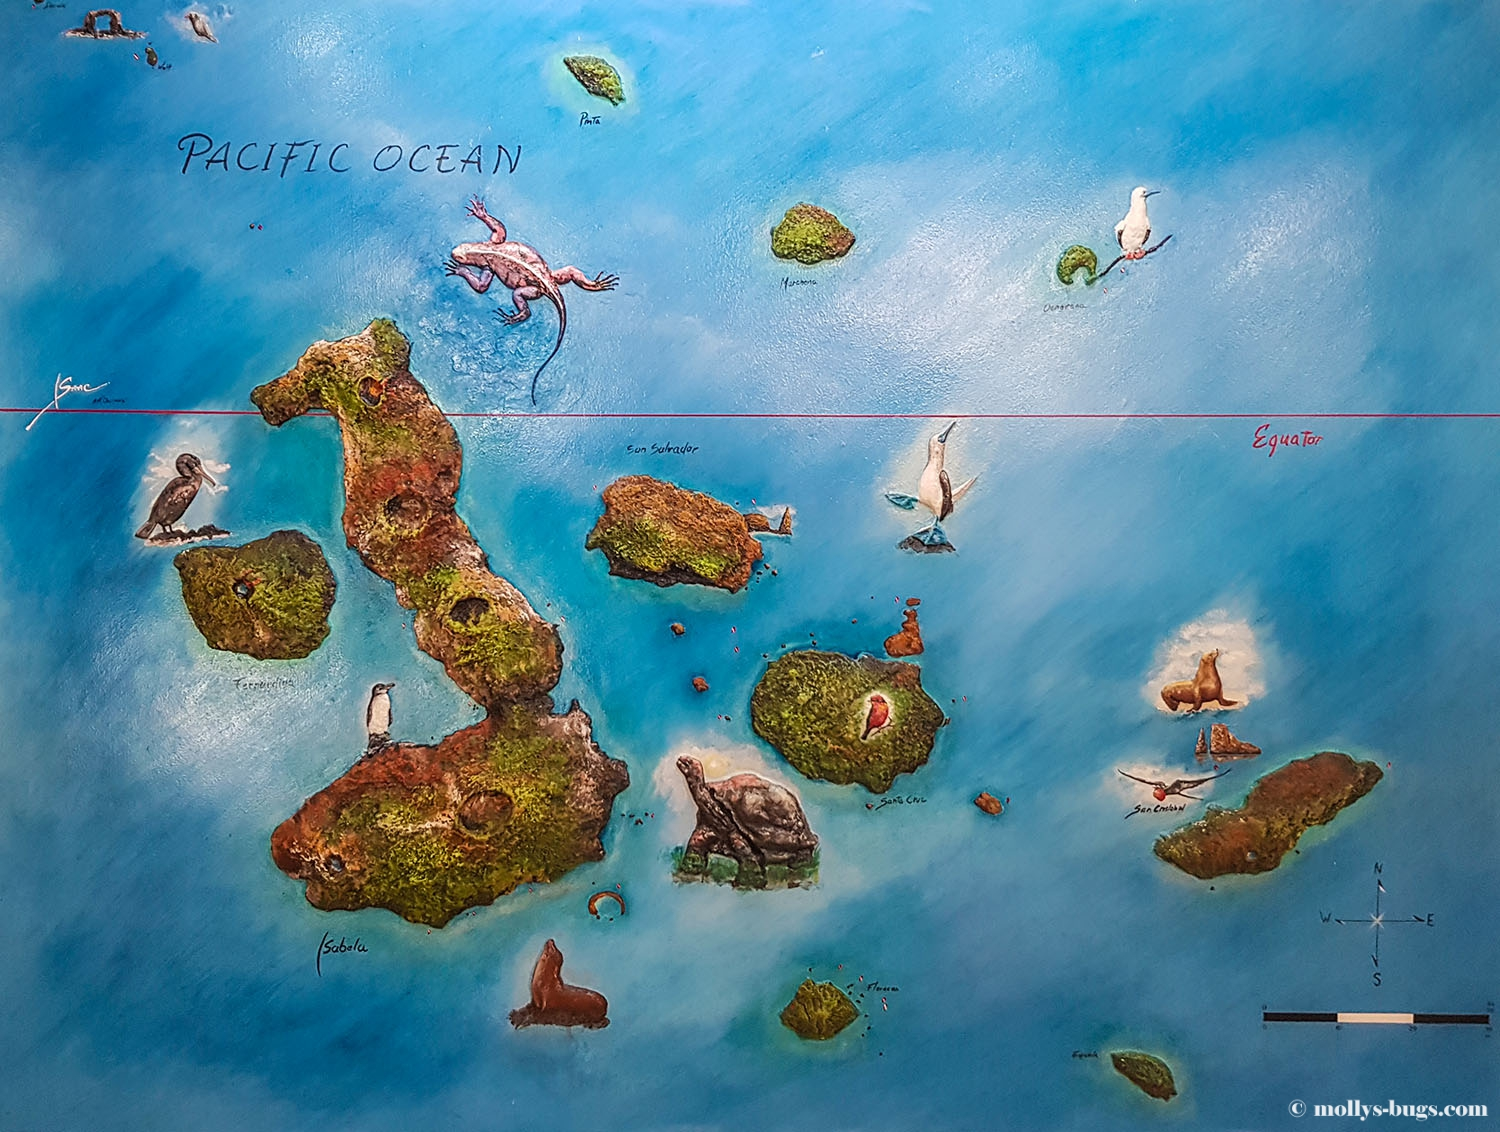 Life on the Galápagos Islands | Molly's bugs The Galapagos Islands Map on